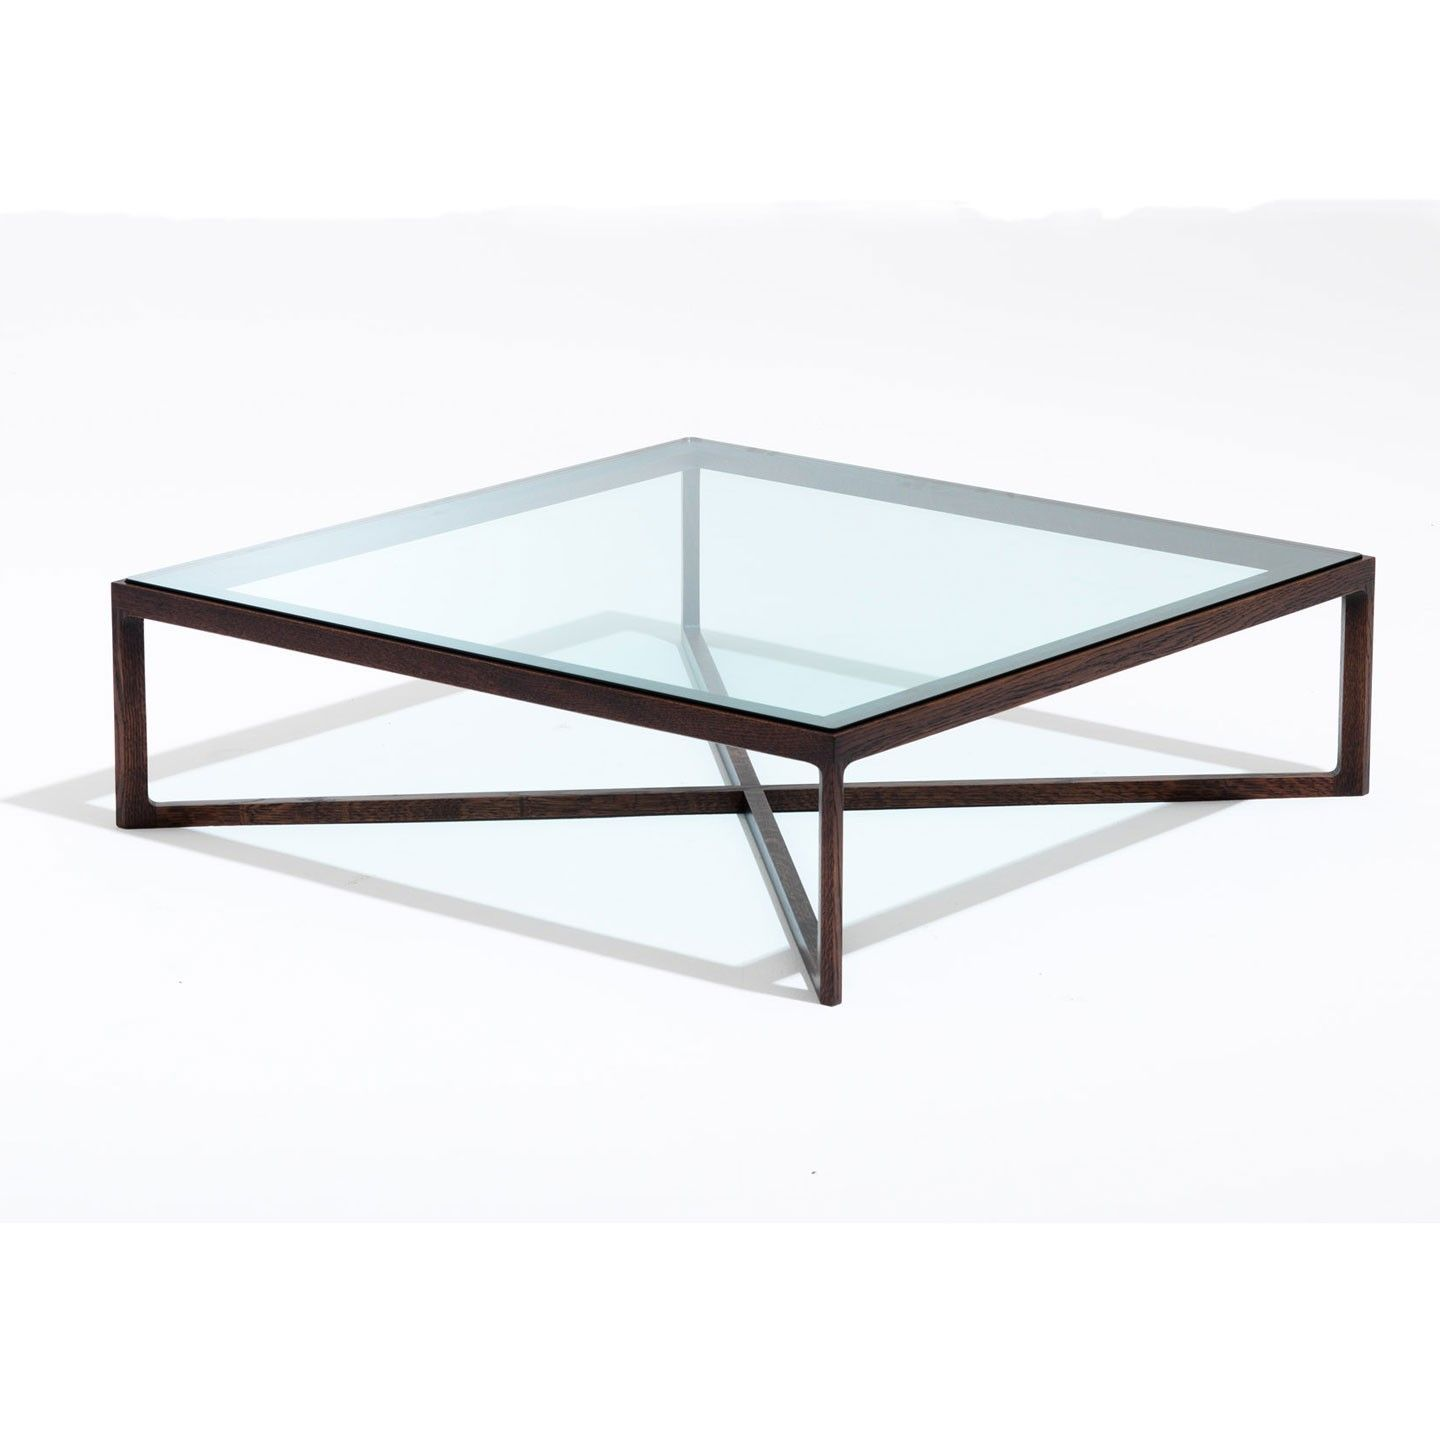 Square Glass Coffee Table for Living Room Decoration -  http:--www.ruchidesigns